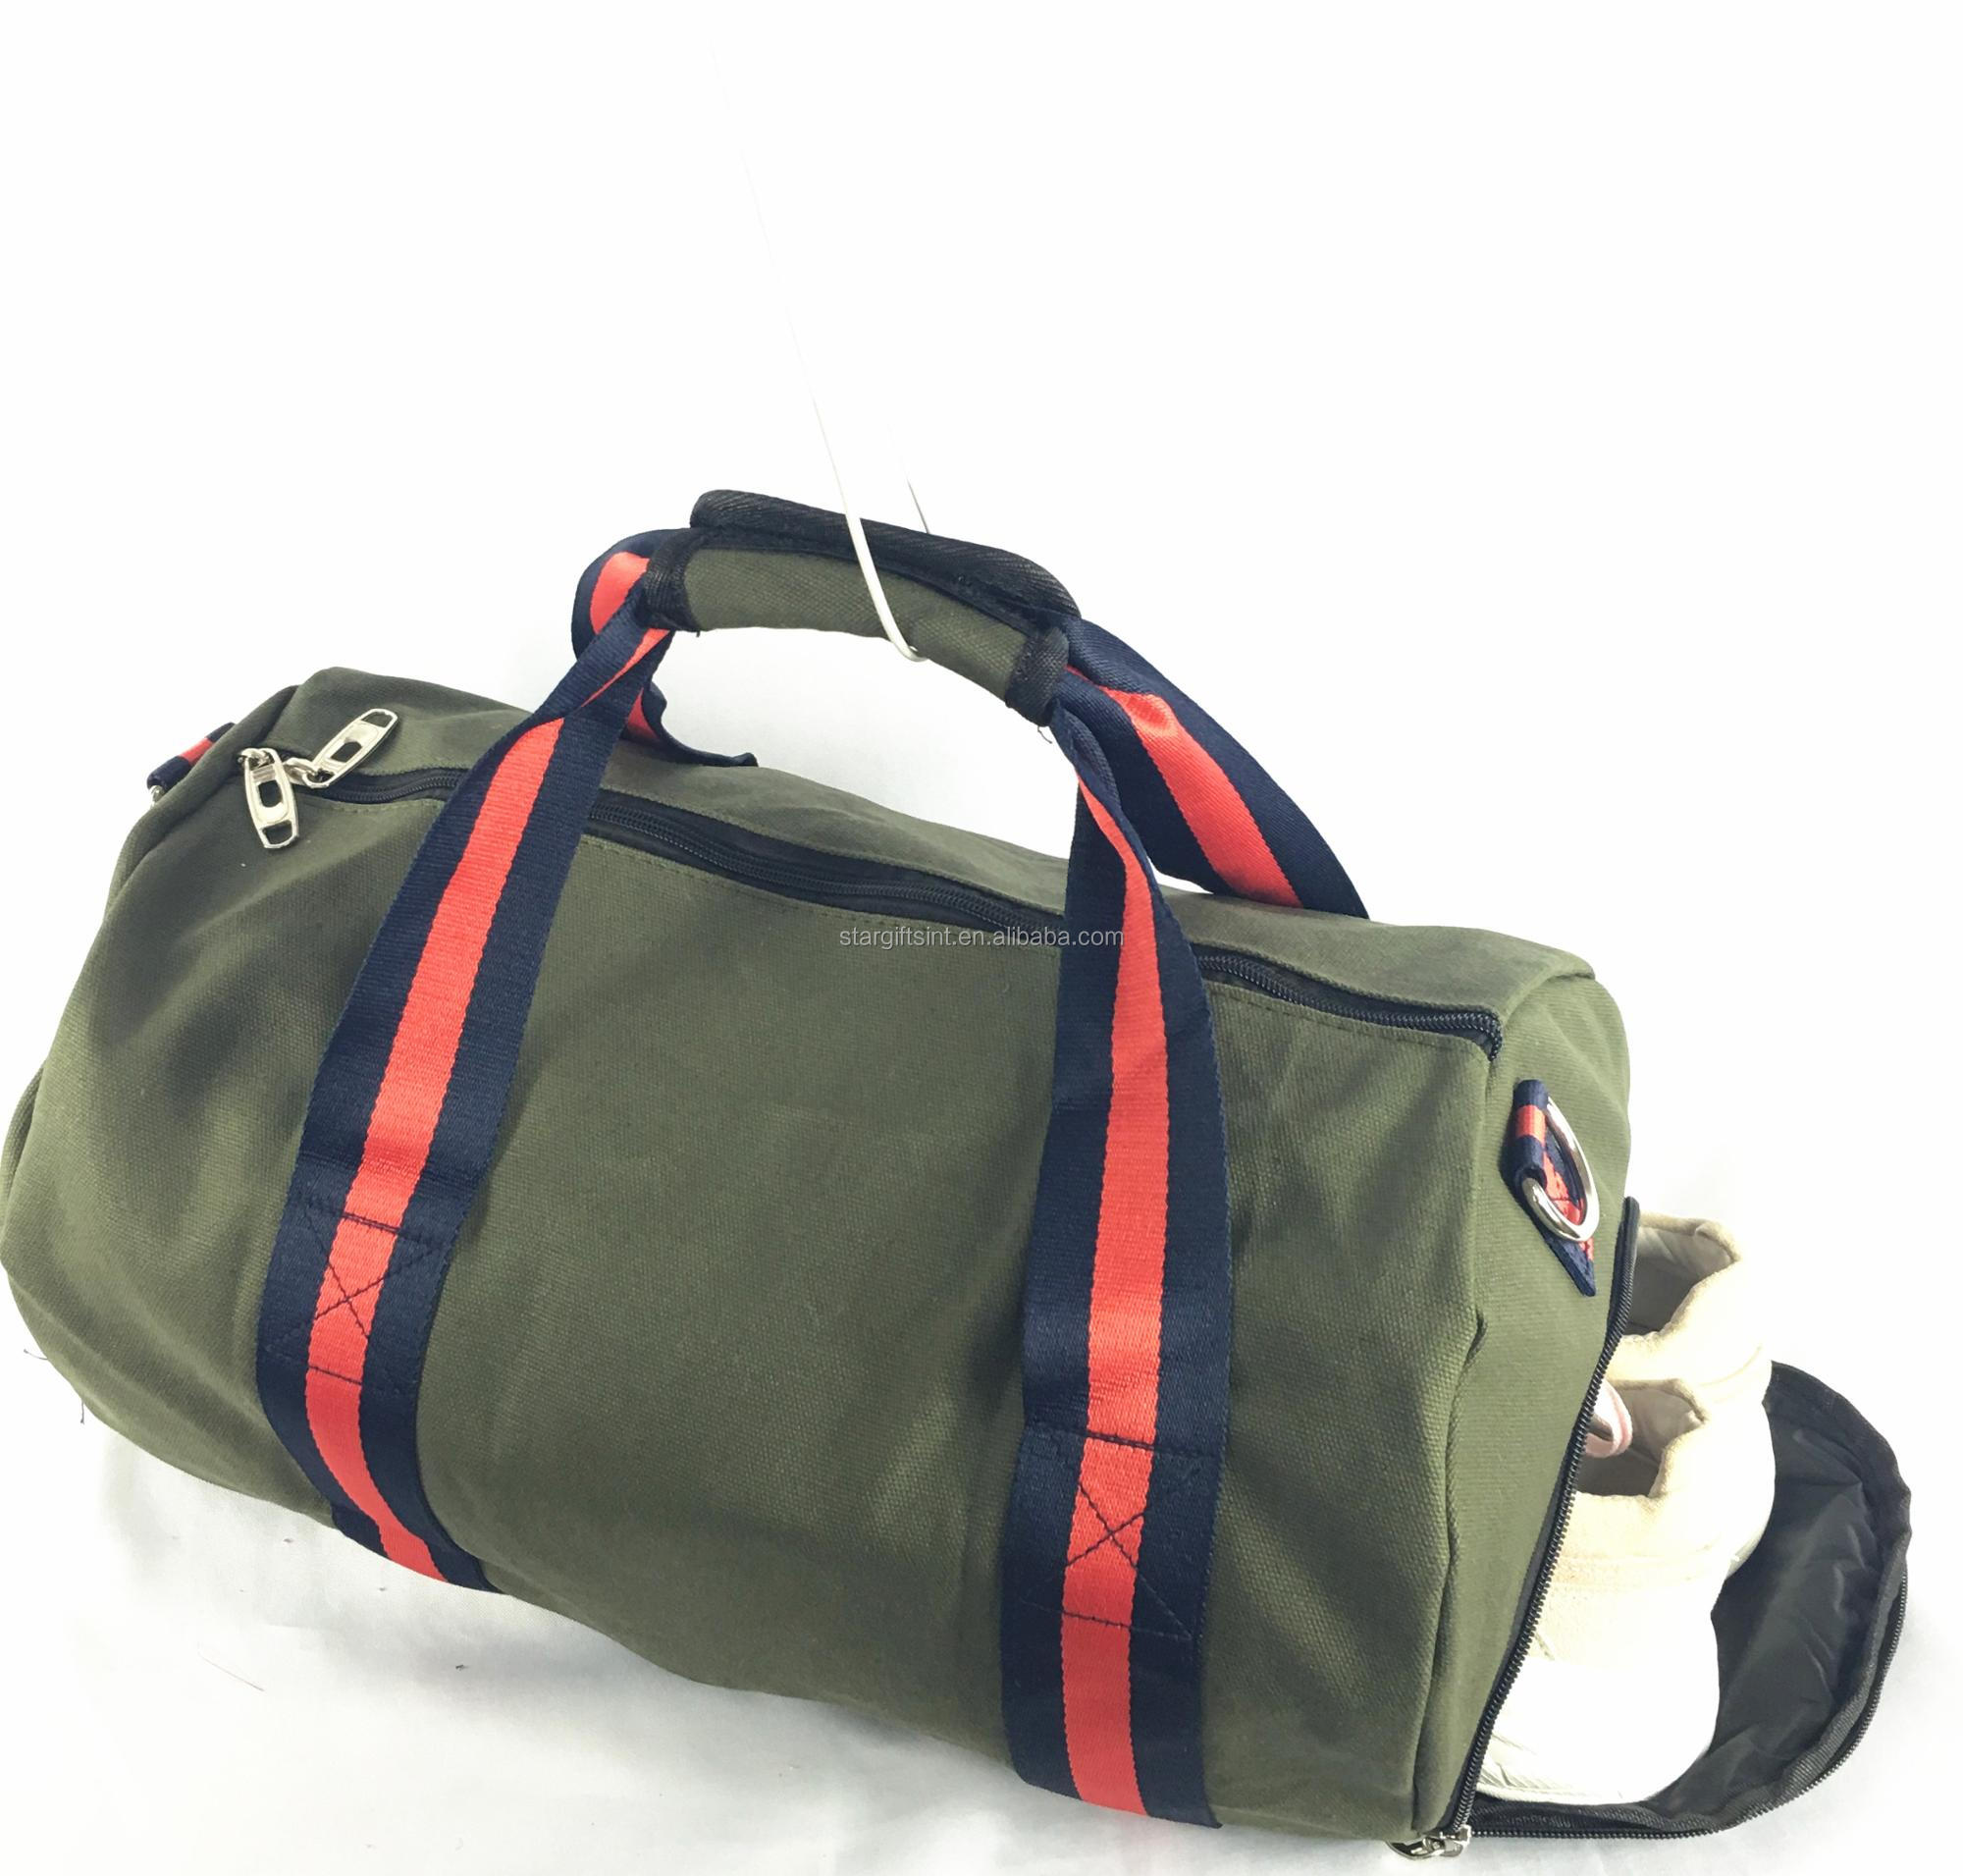 Mens Gym Sports Travel Shoulder Duffle Bag With Shoe Compartment